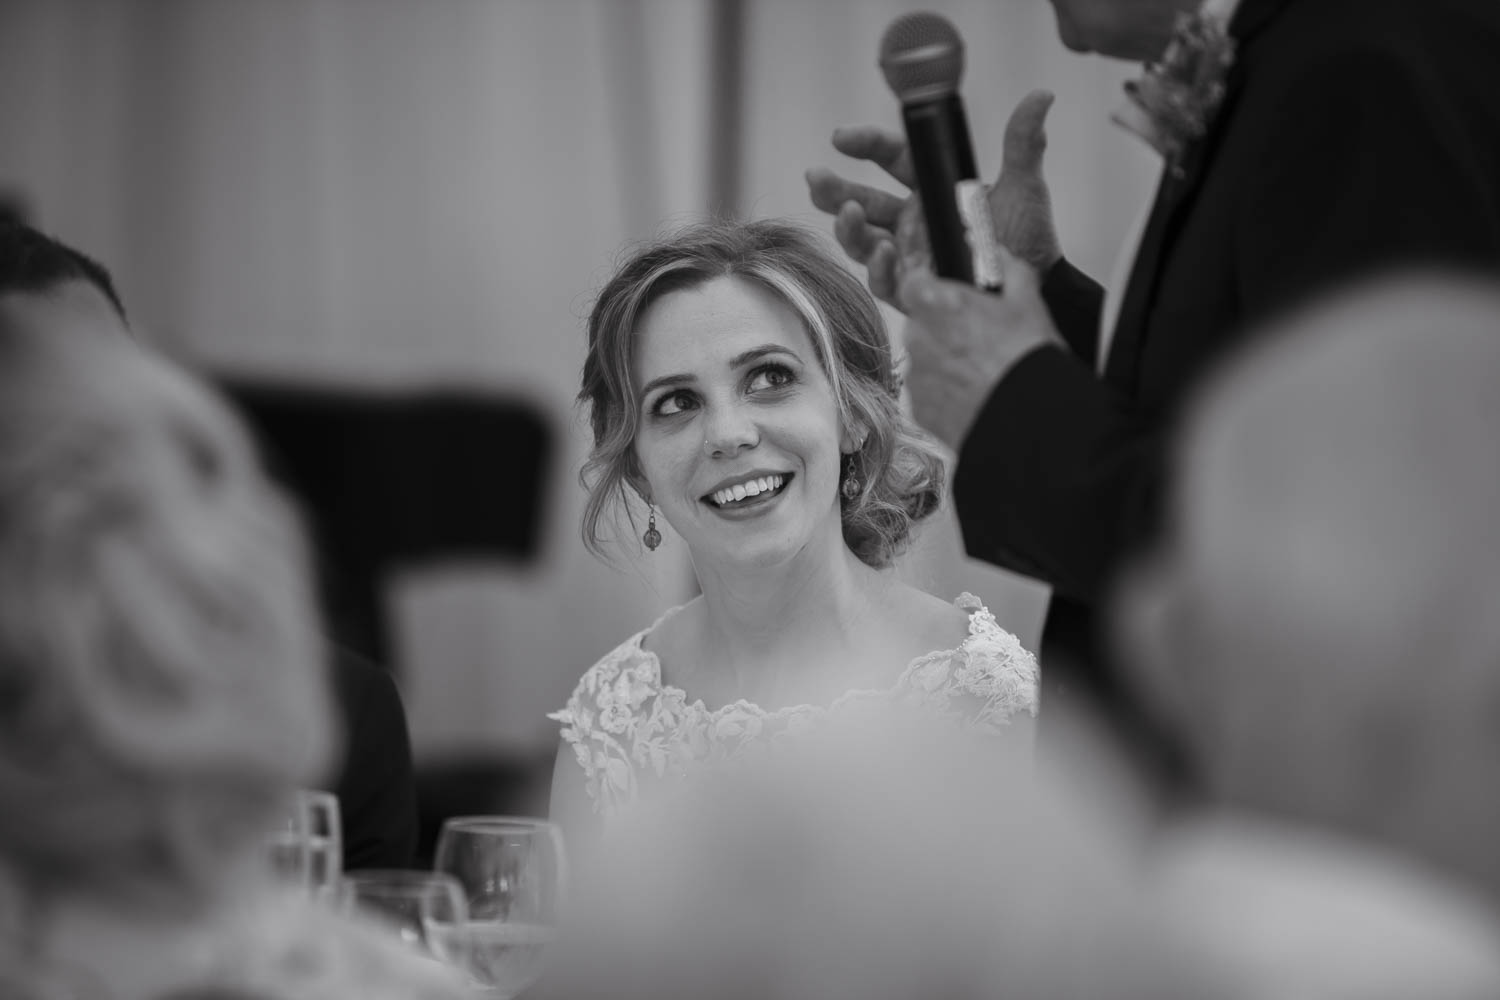 Smiling bride during speeches at wedding ceremony